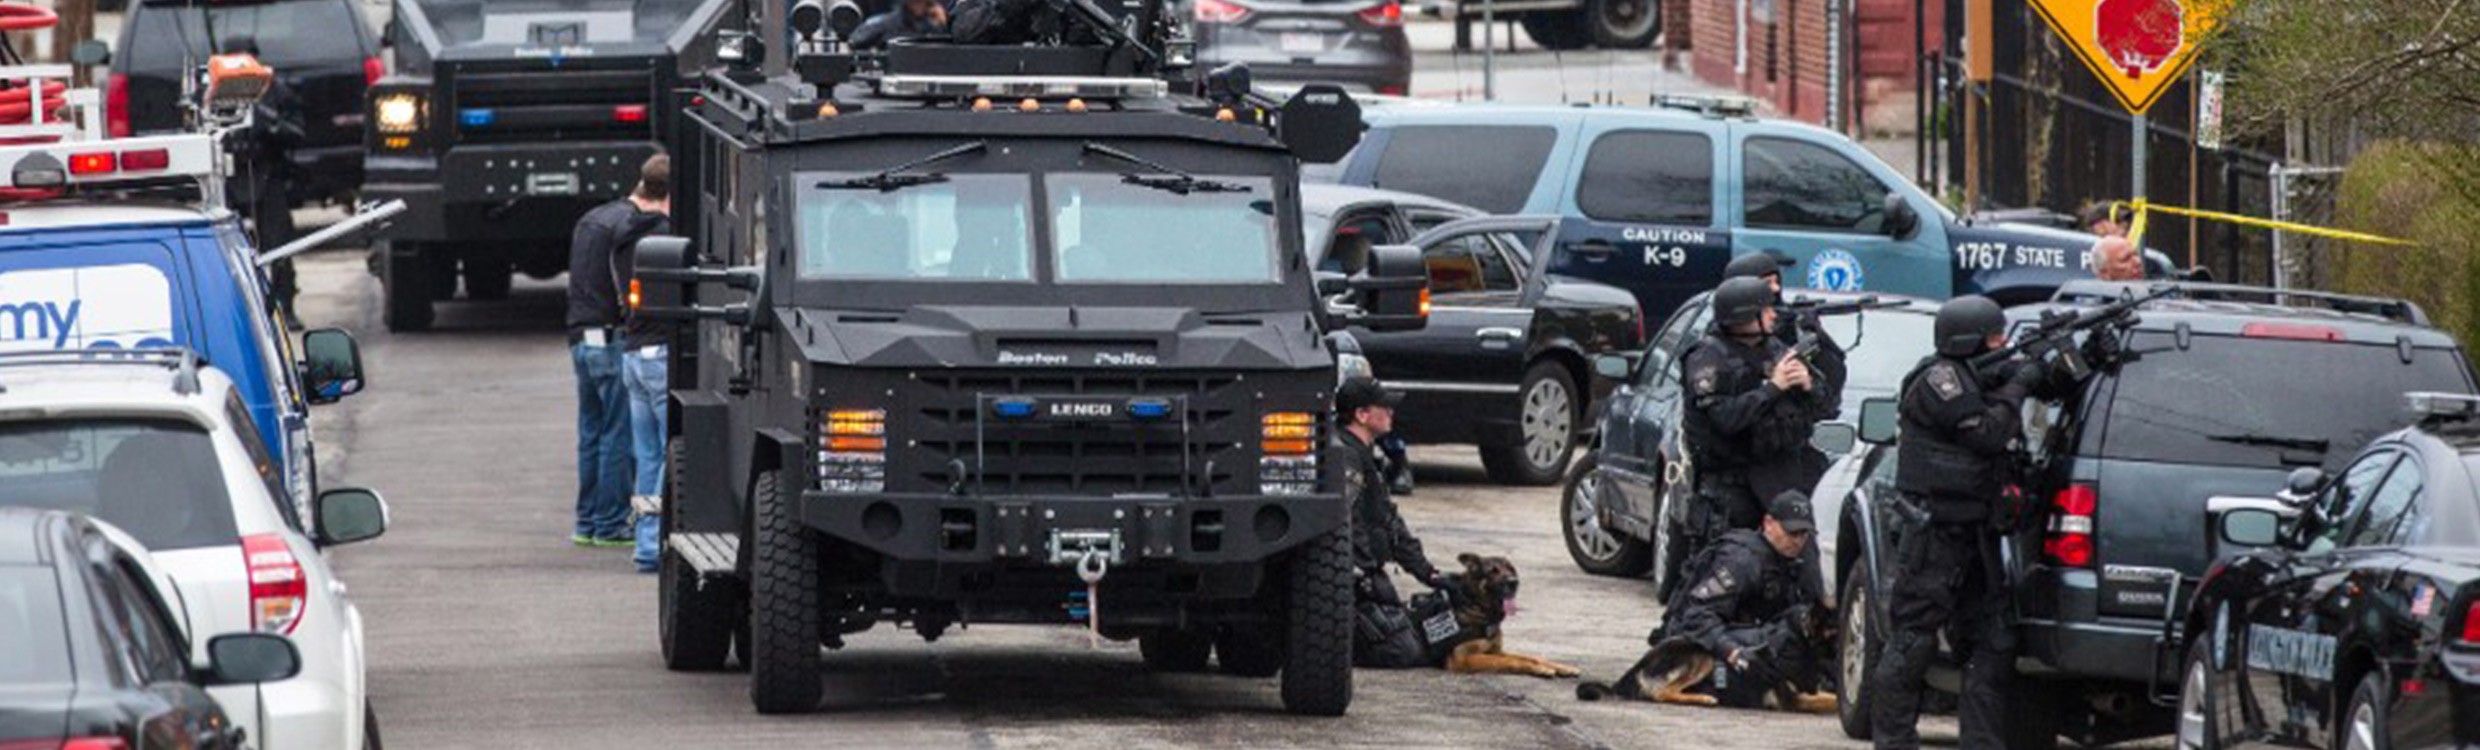 Two Domestic Terrorist Attacks Documented with Leica